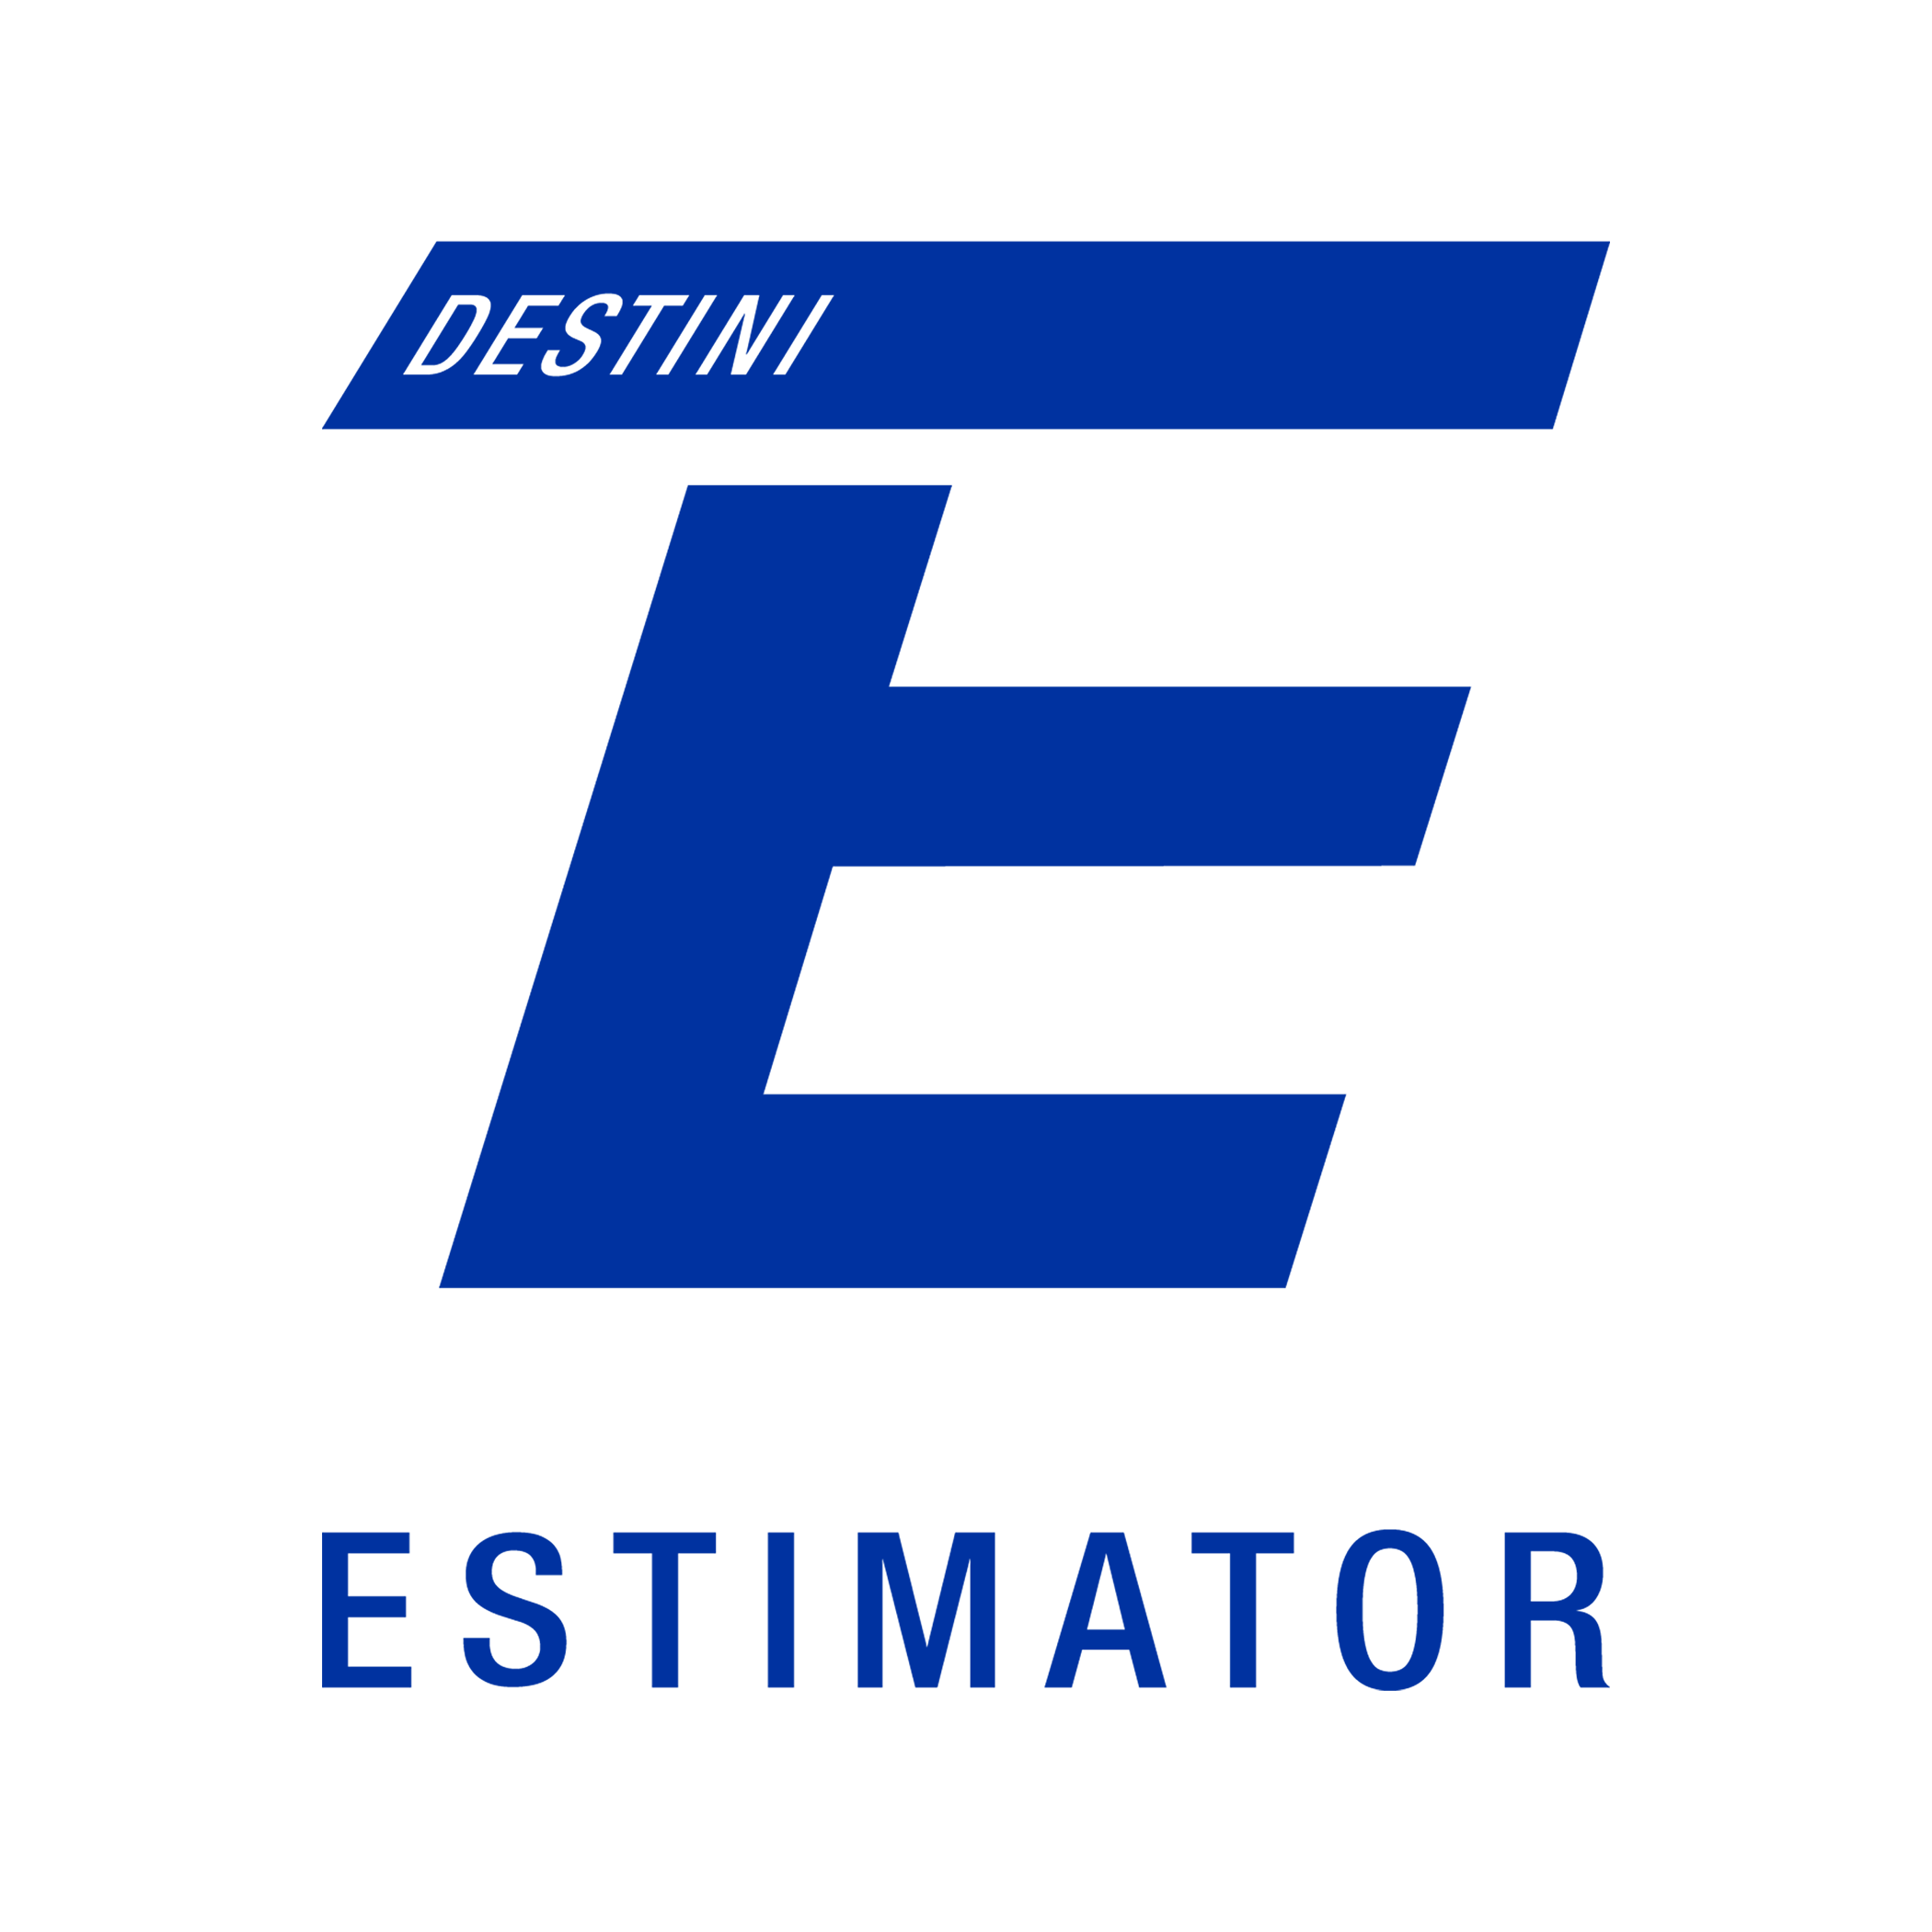 Logotipo de DESTINI Estimator